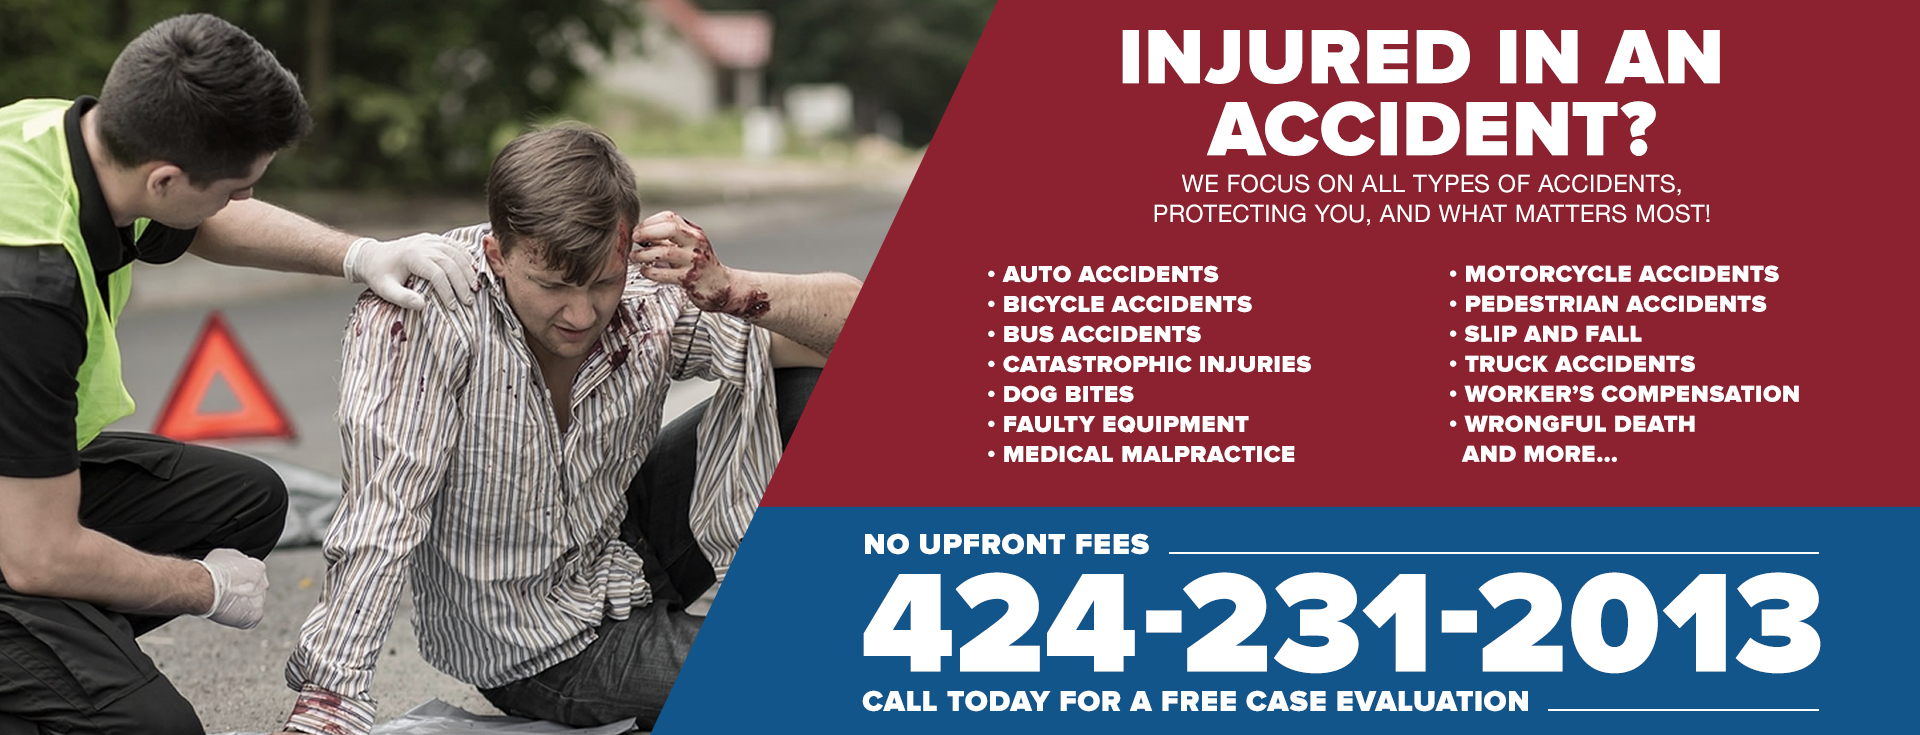 Los Angeles Personal Injury Attorney image 1